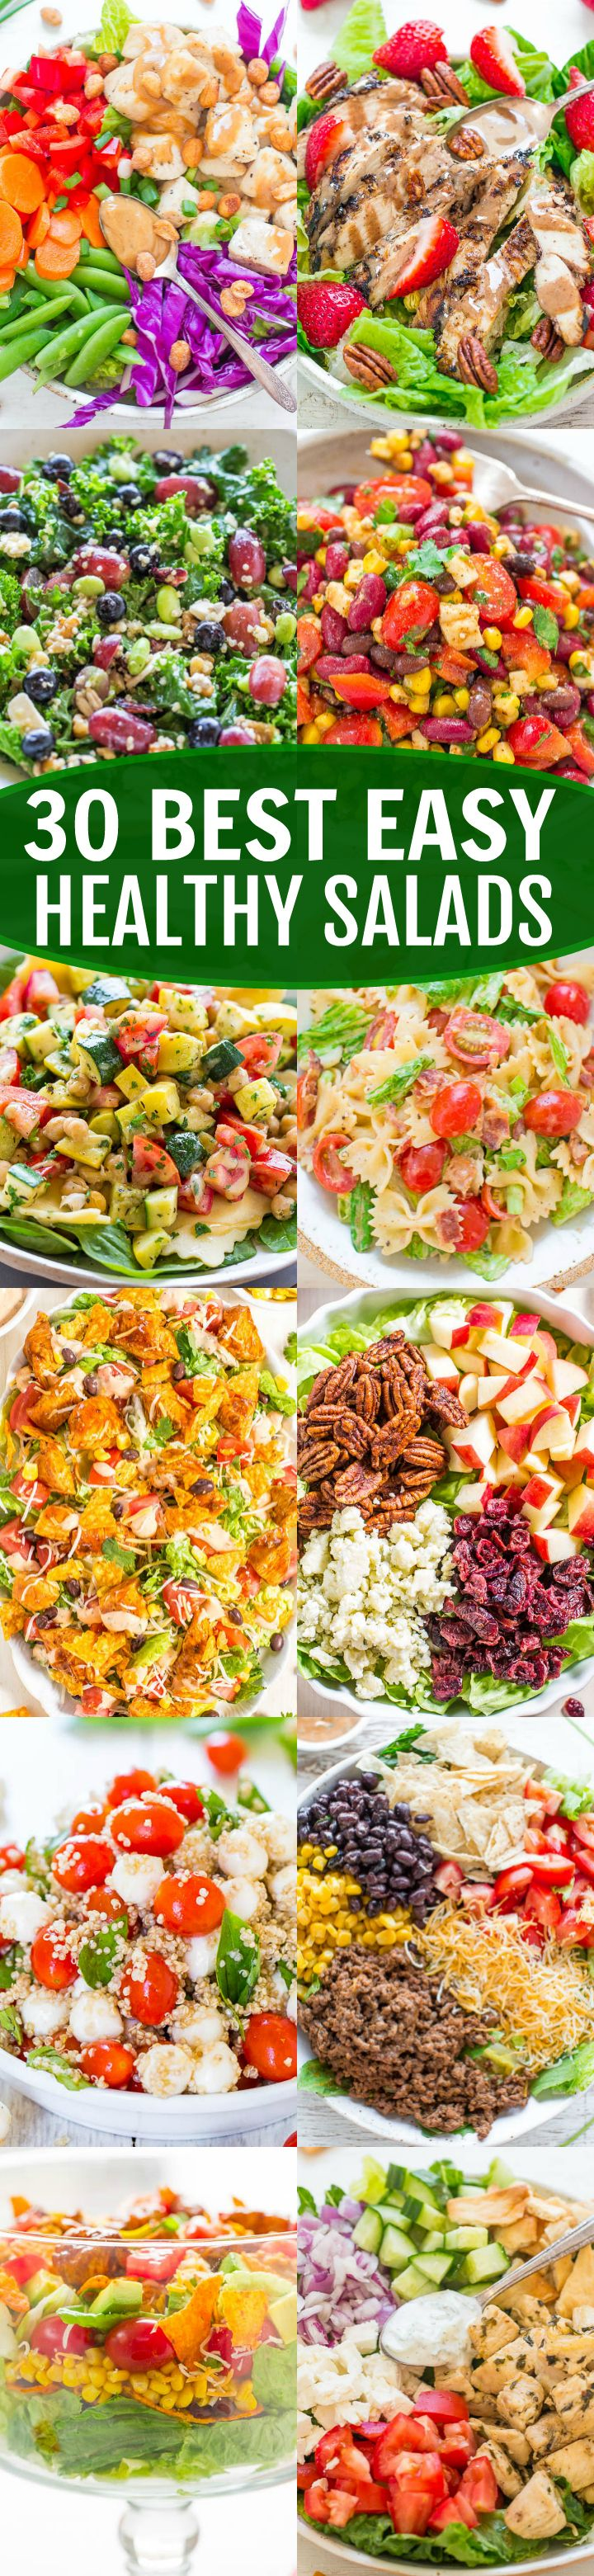 I love salads and for me a salad means more than just lettuce with some dressing on it. Snore-bore and life is way too short for boring food. You don't have to have lettuce to have a salad in my book. But you do have to include lots of crunchy vegetables with different textures and …